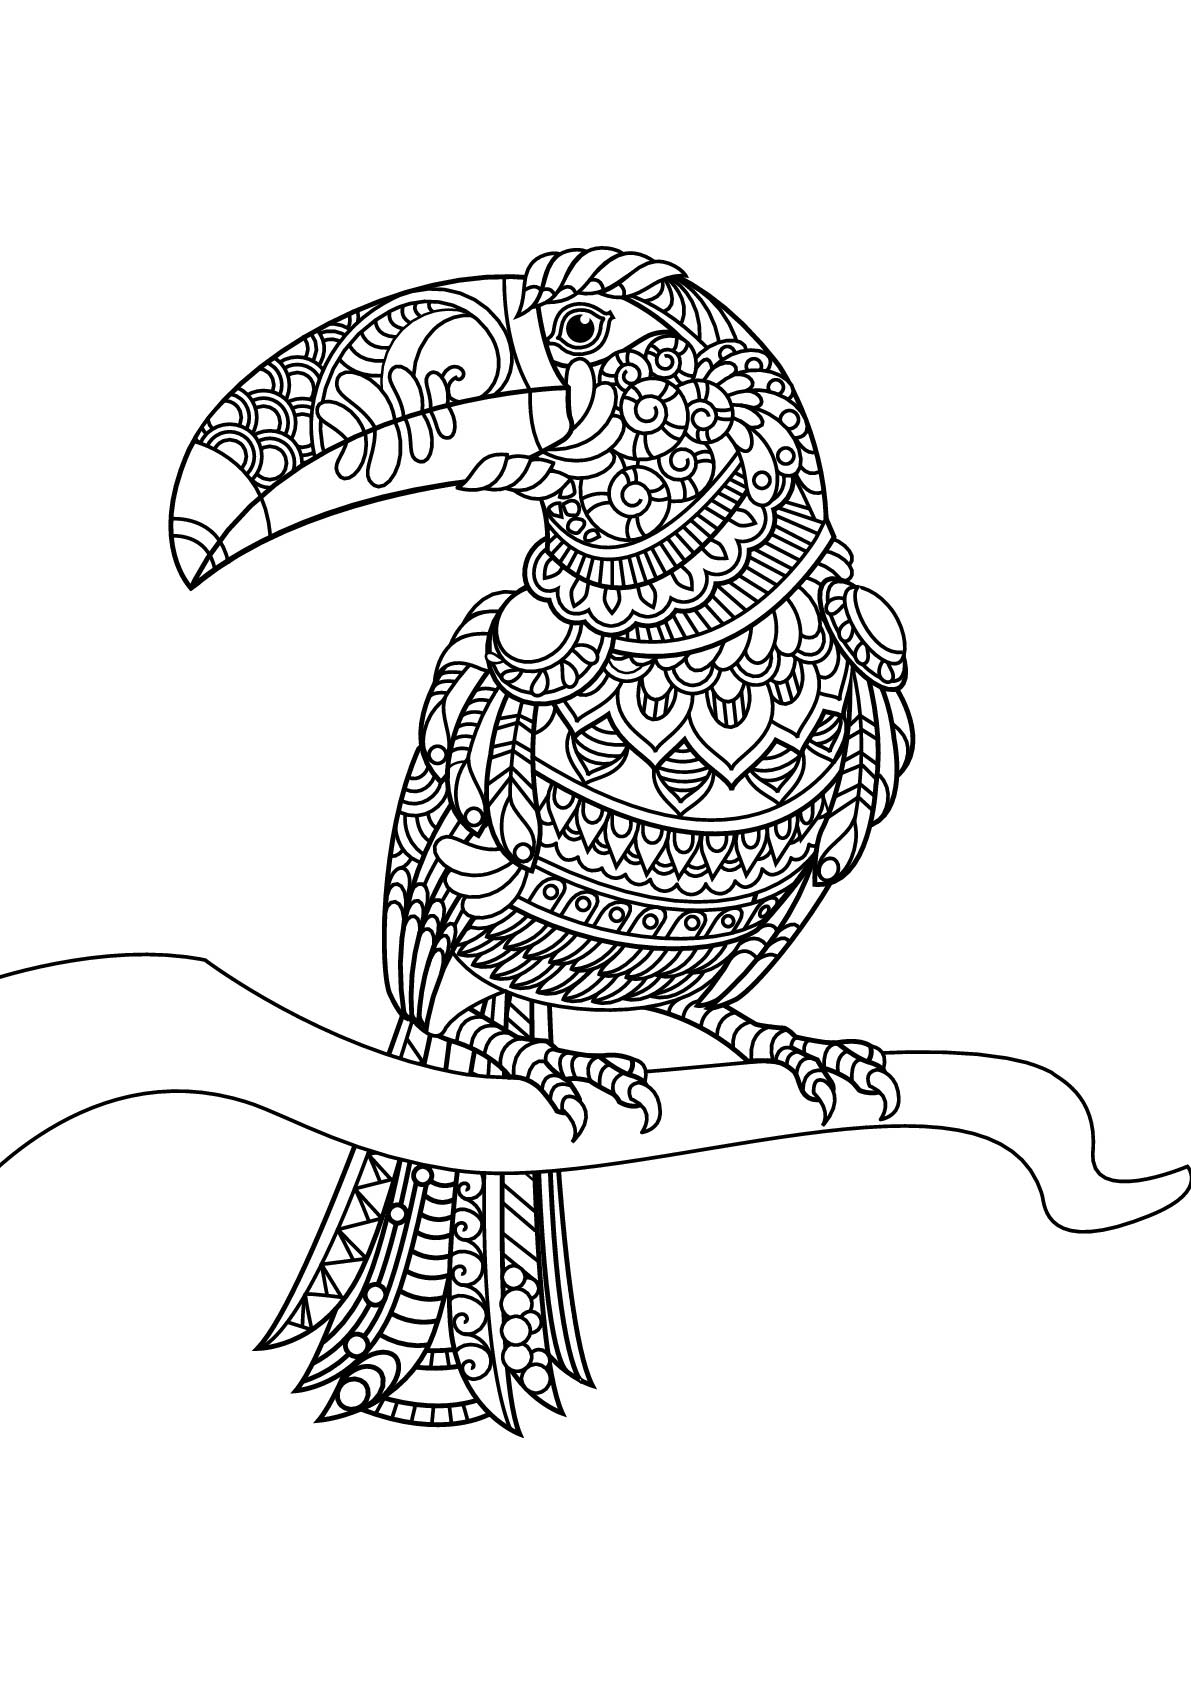 bird coloring pages for adults birds free to color for children birds kids coloring pages pages bird coloring for adults